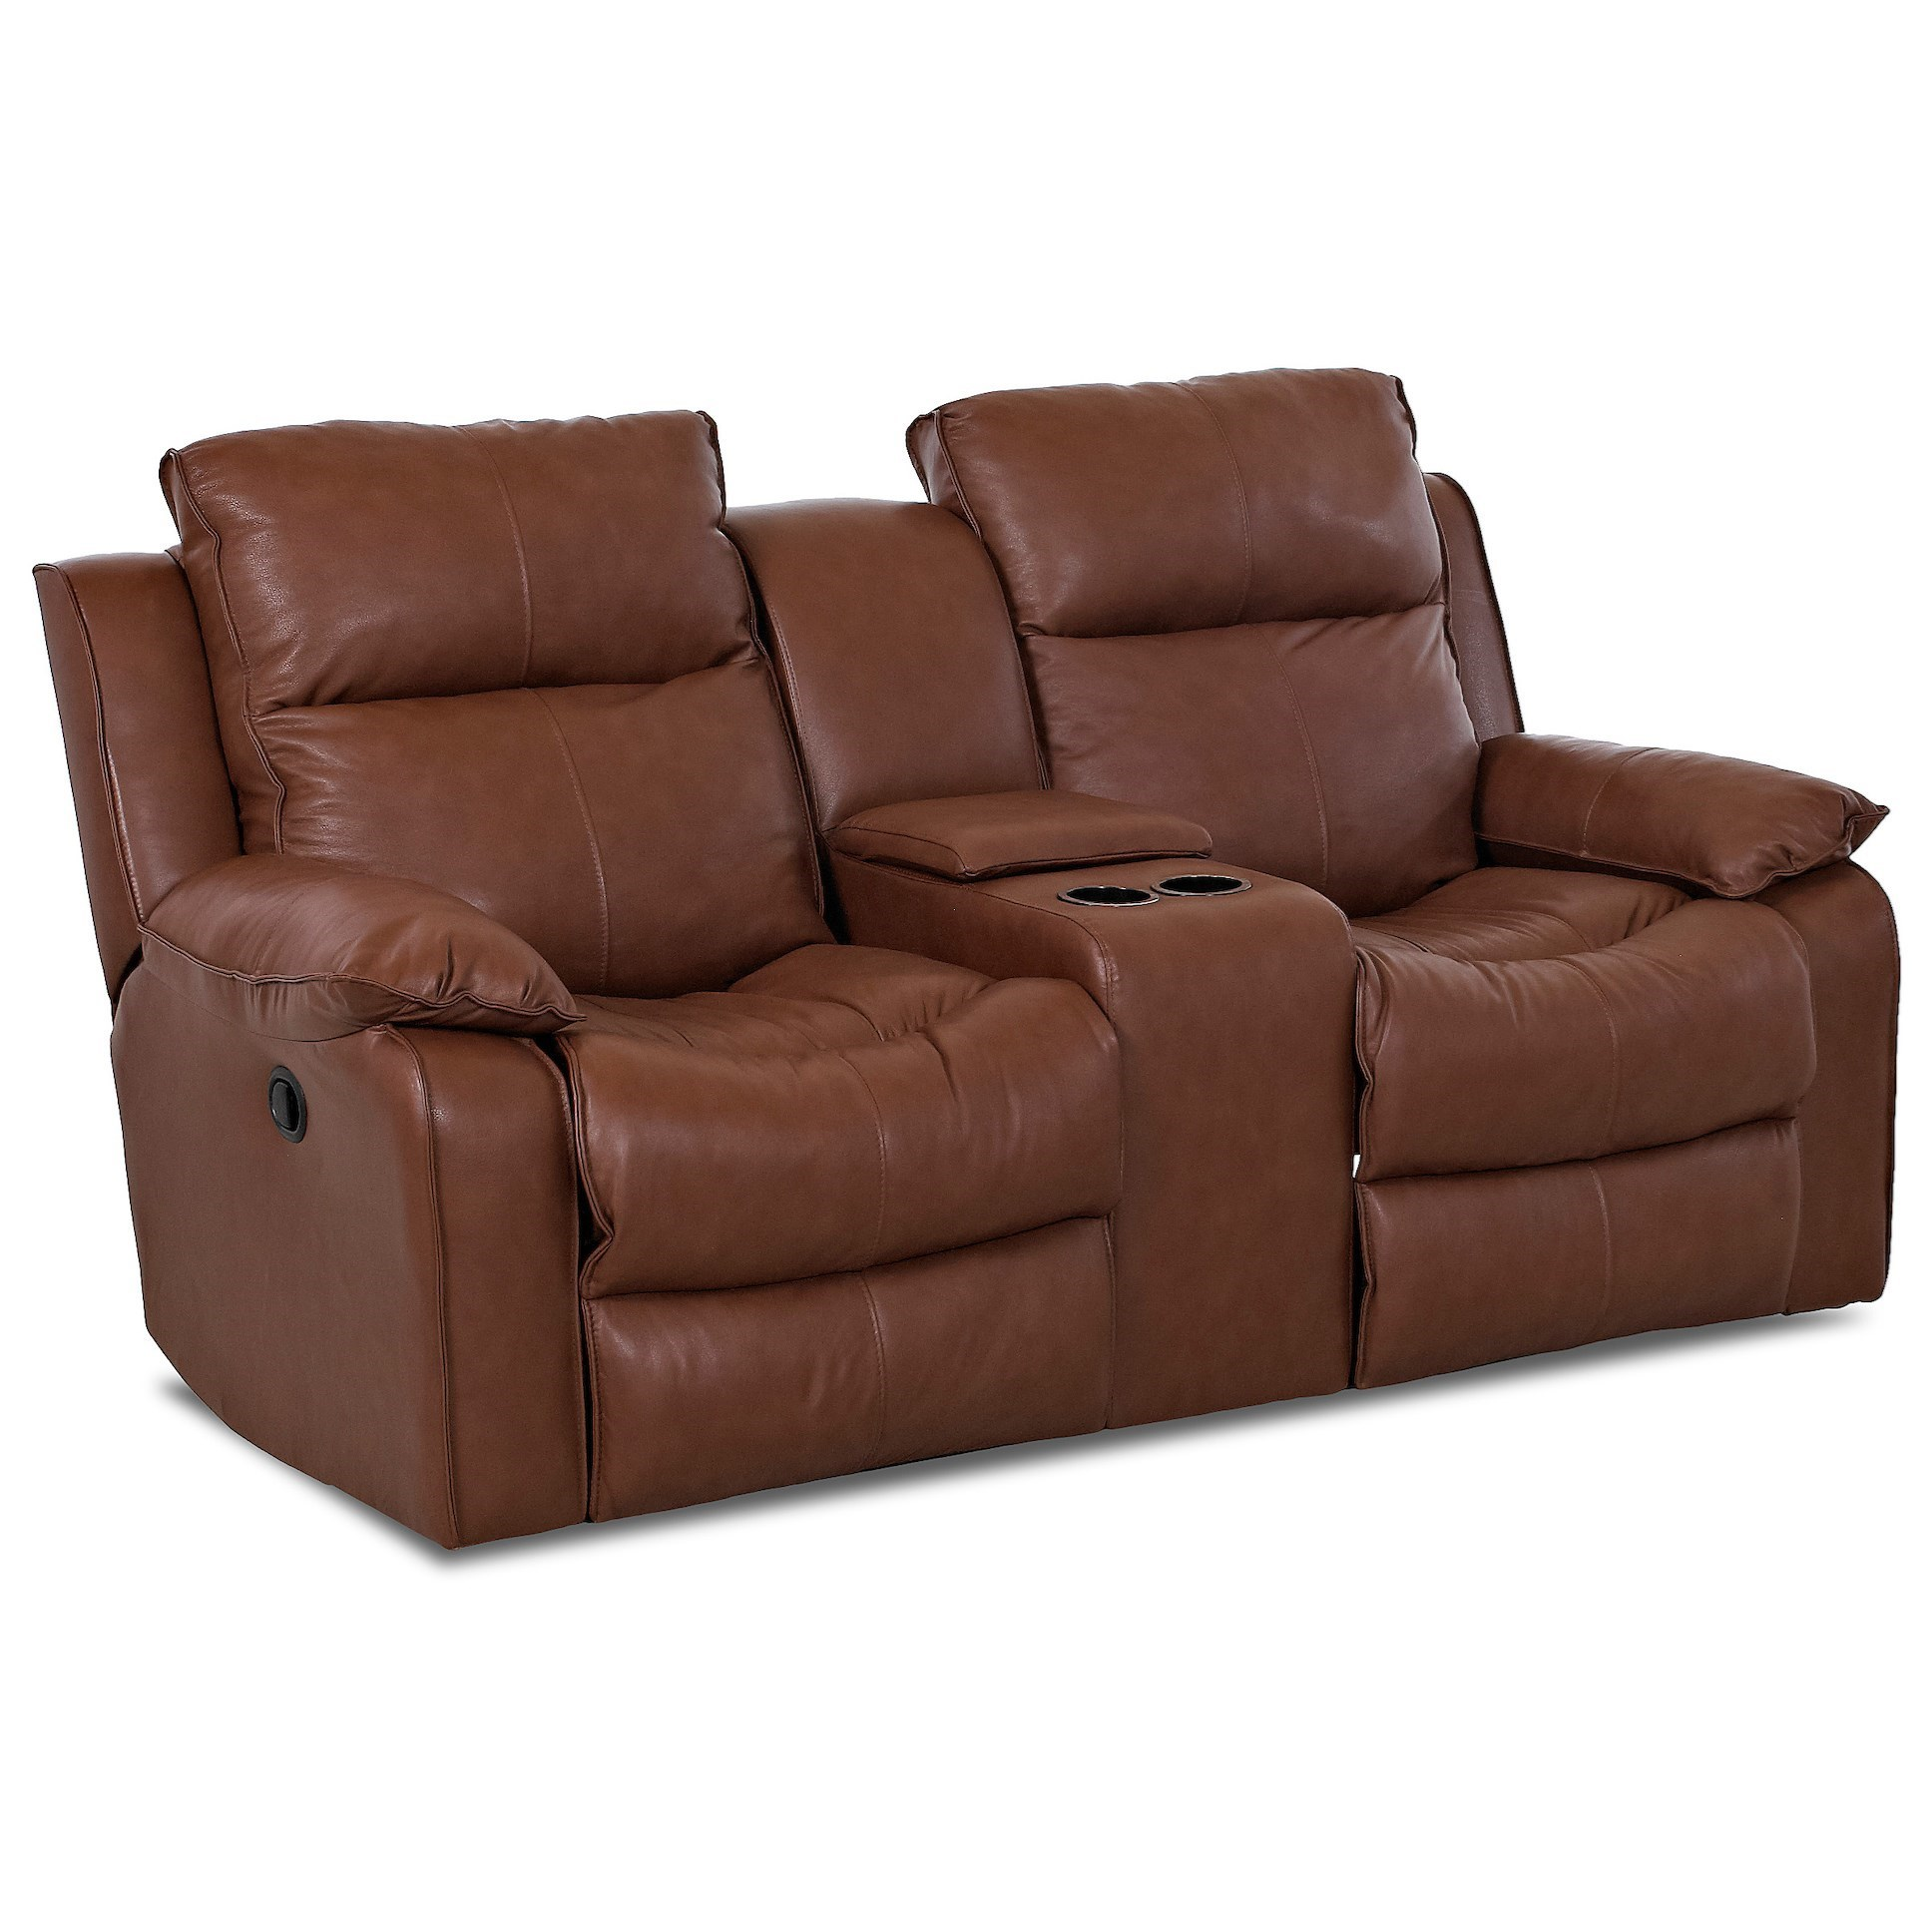 Castaway Console Reclining Loveseat by Klaussner at Johnny Janosik